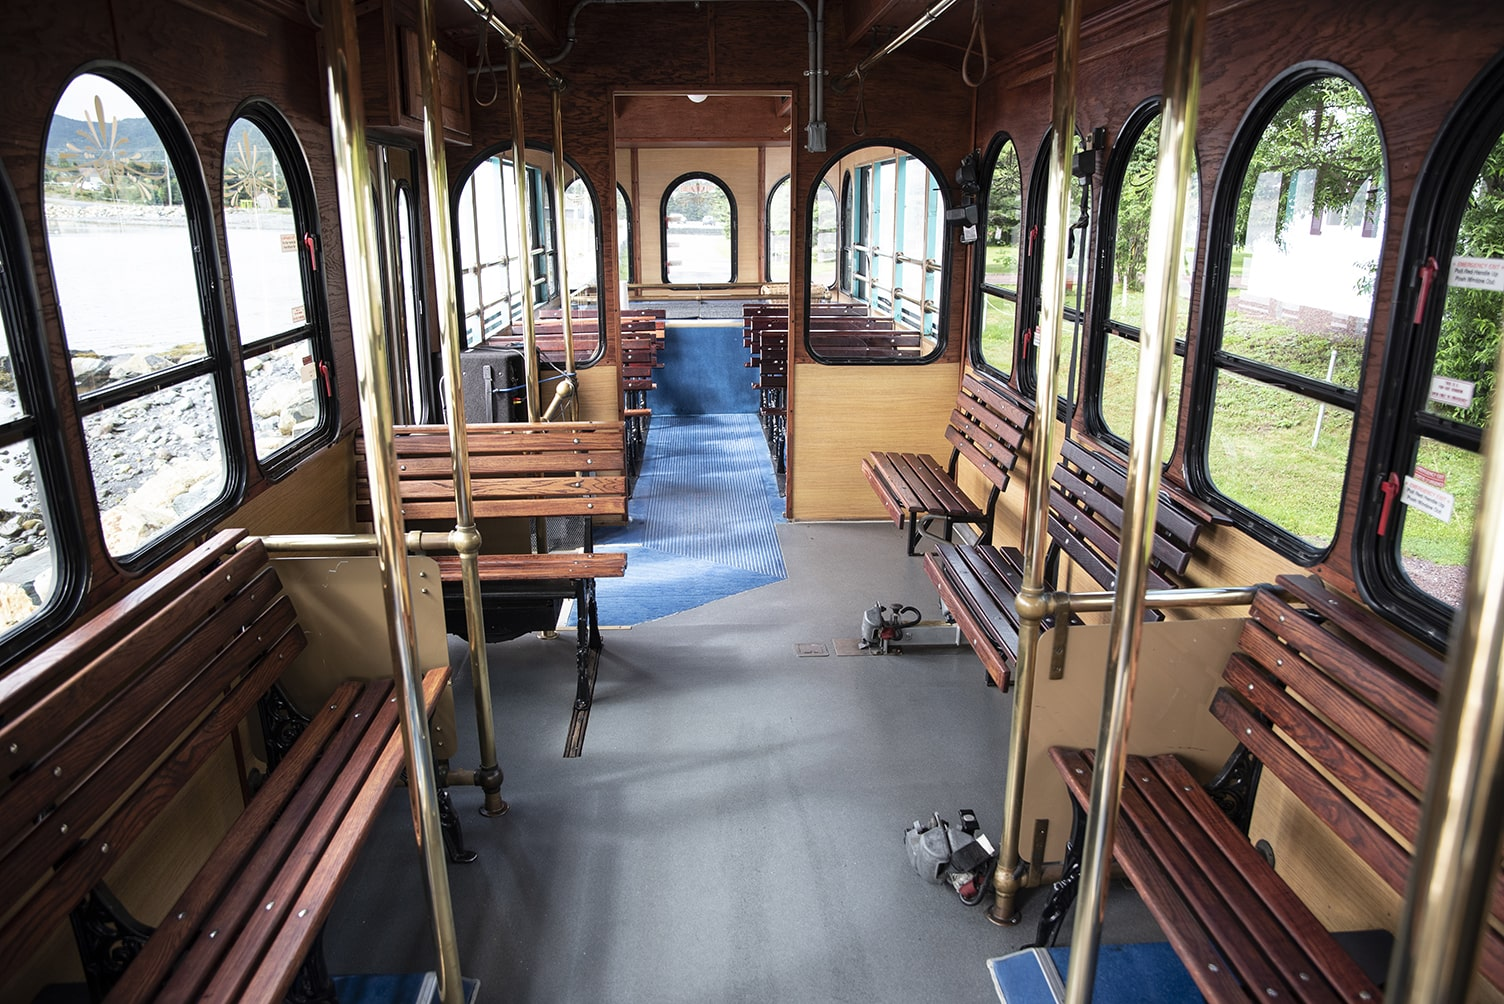 Classic Carriage Trolley, St. John's bus, Newfoundland group tours, NL Transportation